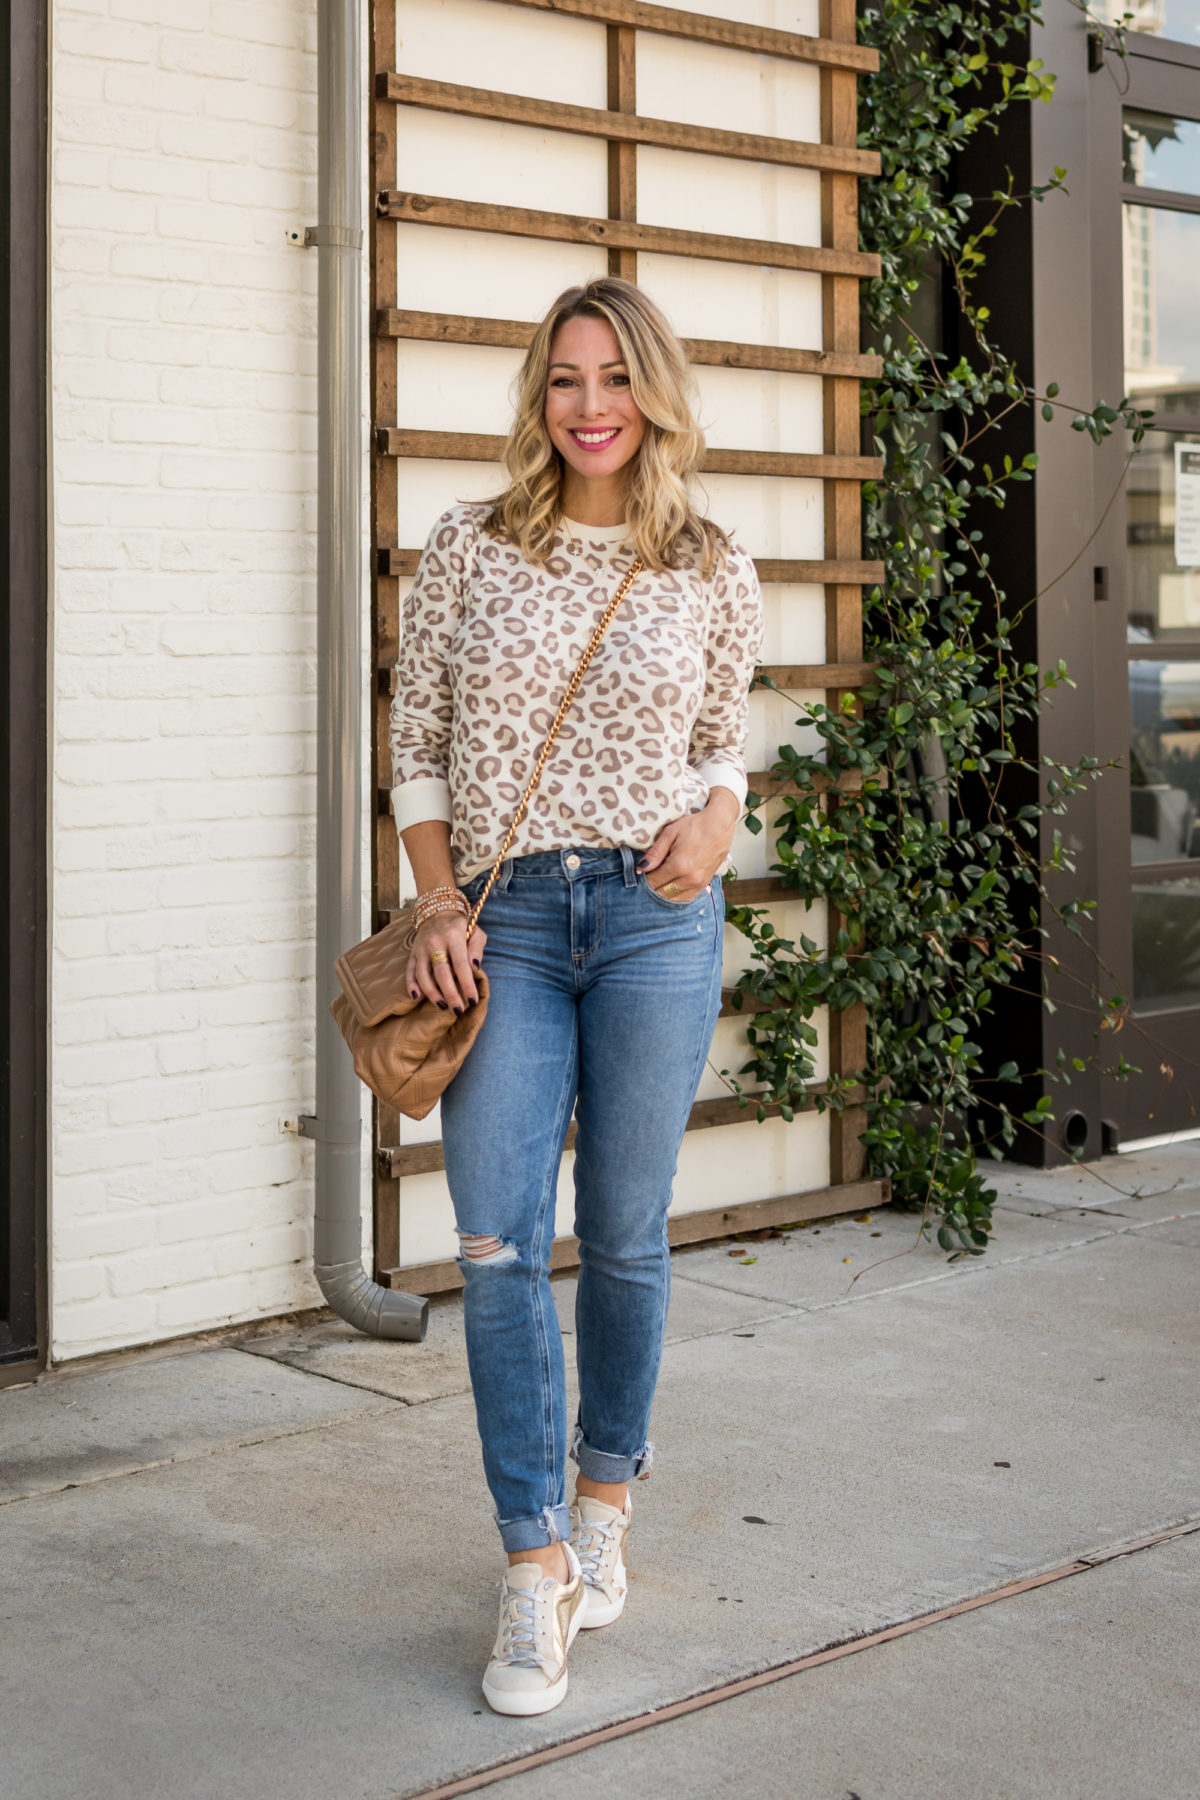 Gibson x Hi Sugarplum Home for the Holidays leopard pullover and jeans